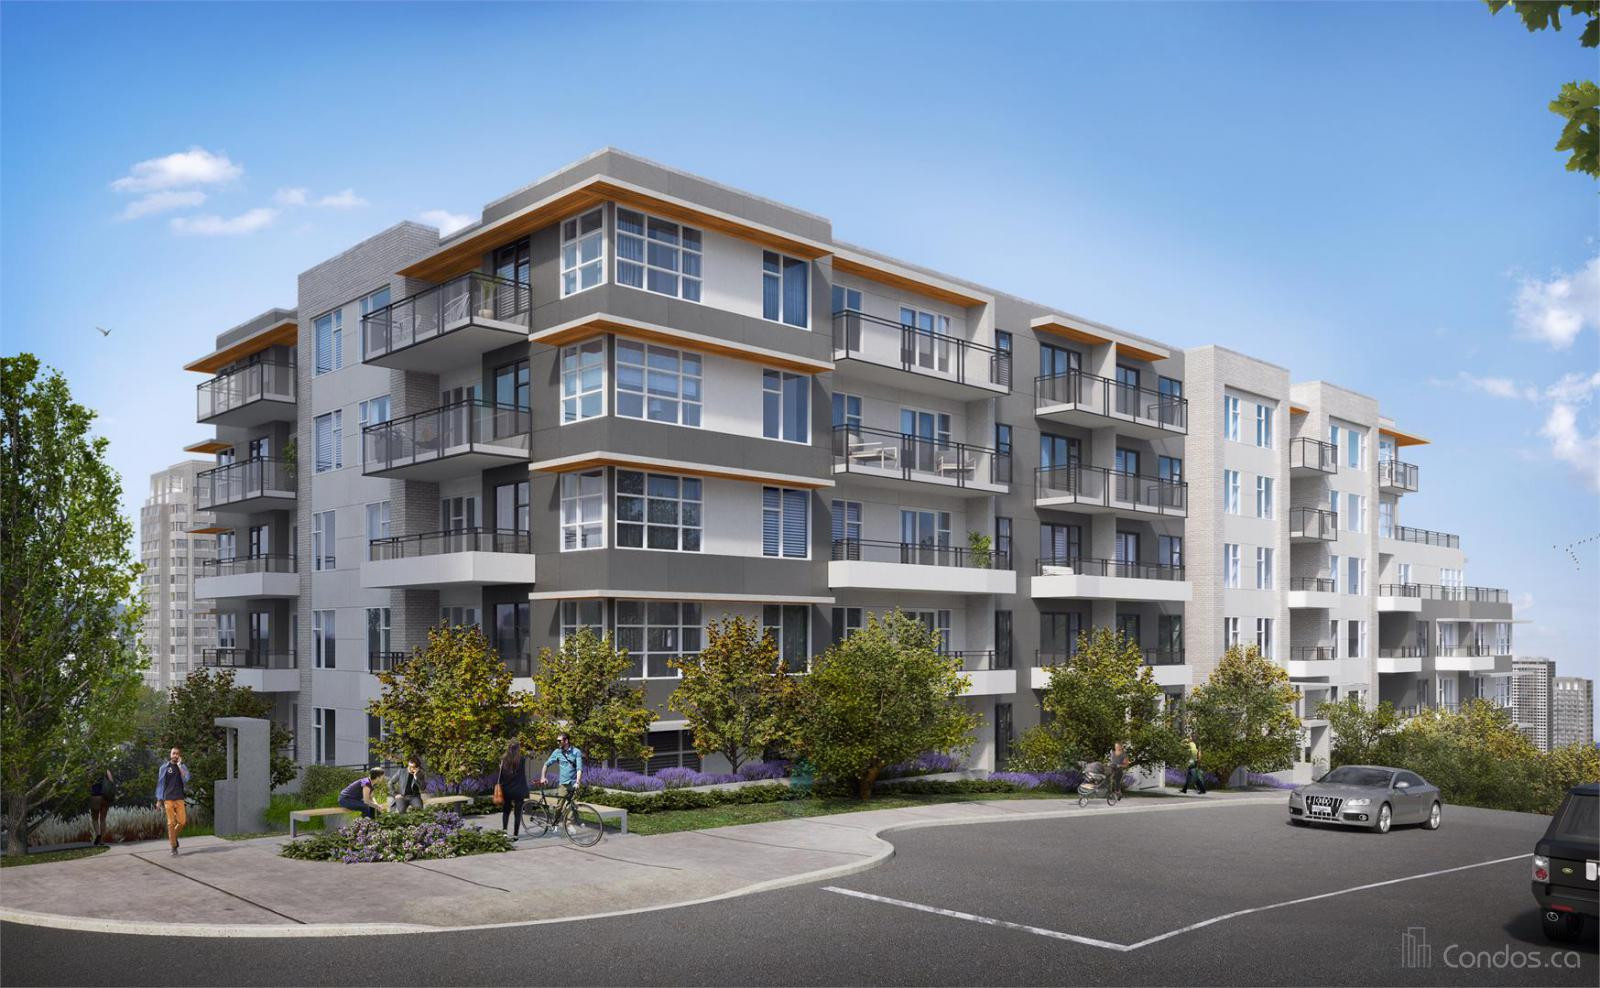 Capitol at 1002 Auckland St, New Westminster 0